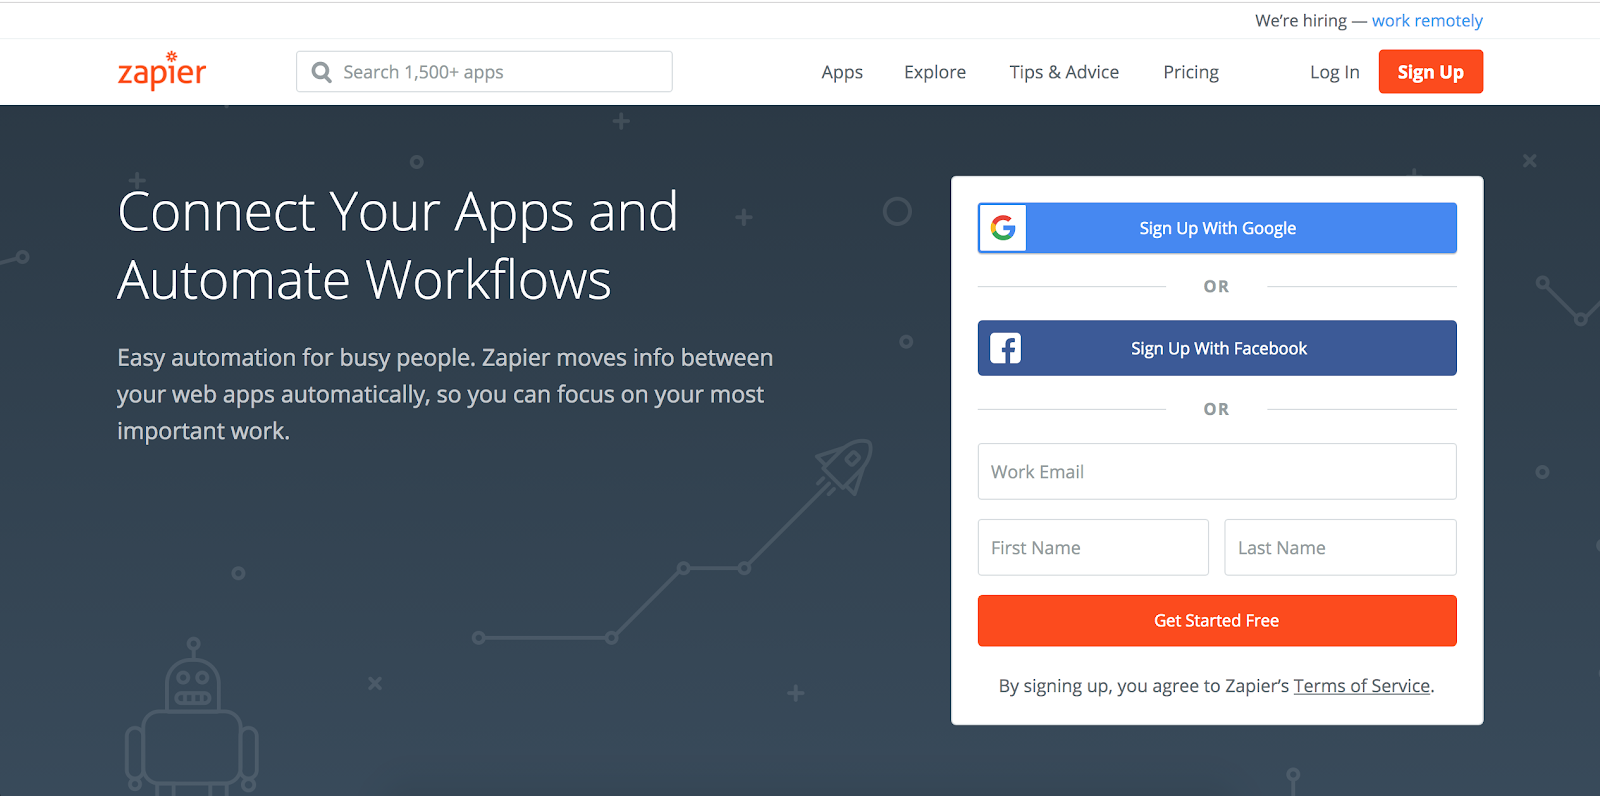 Top Marketing Tool Example #5 - Zapier | 16 Powerful Marketing Tools You Haven't Considered (But Probably Should)